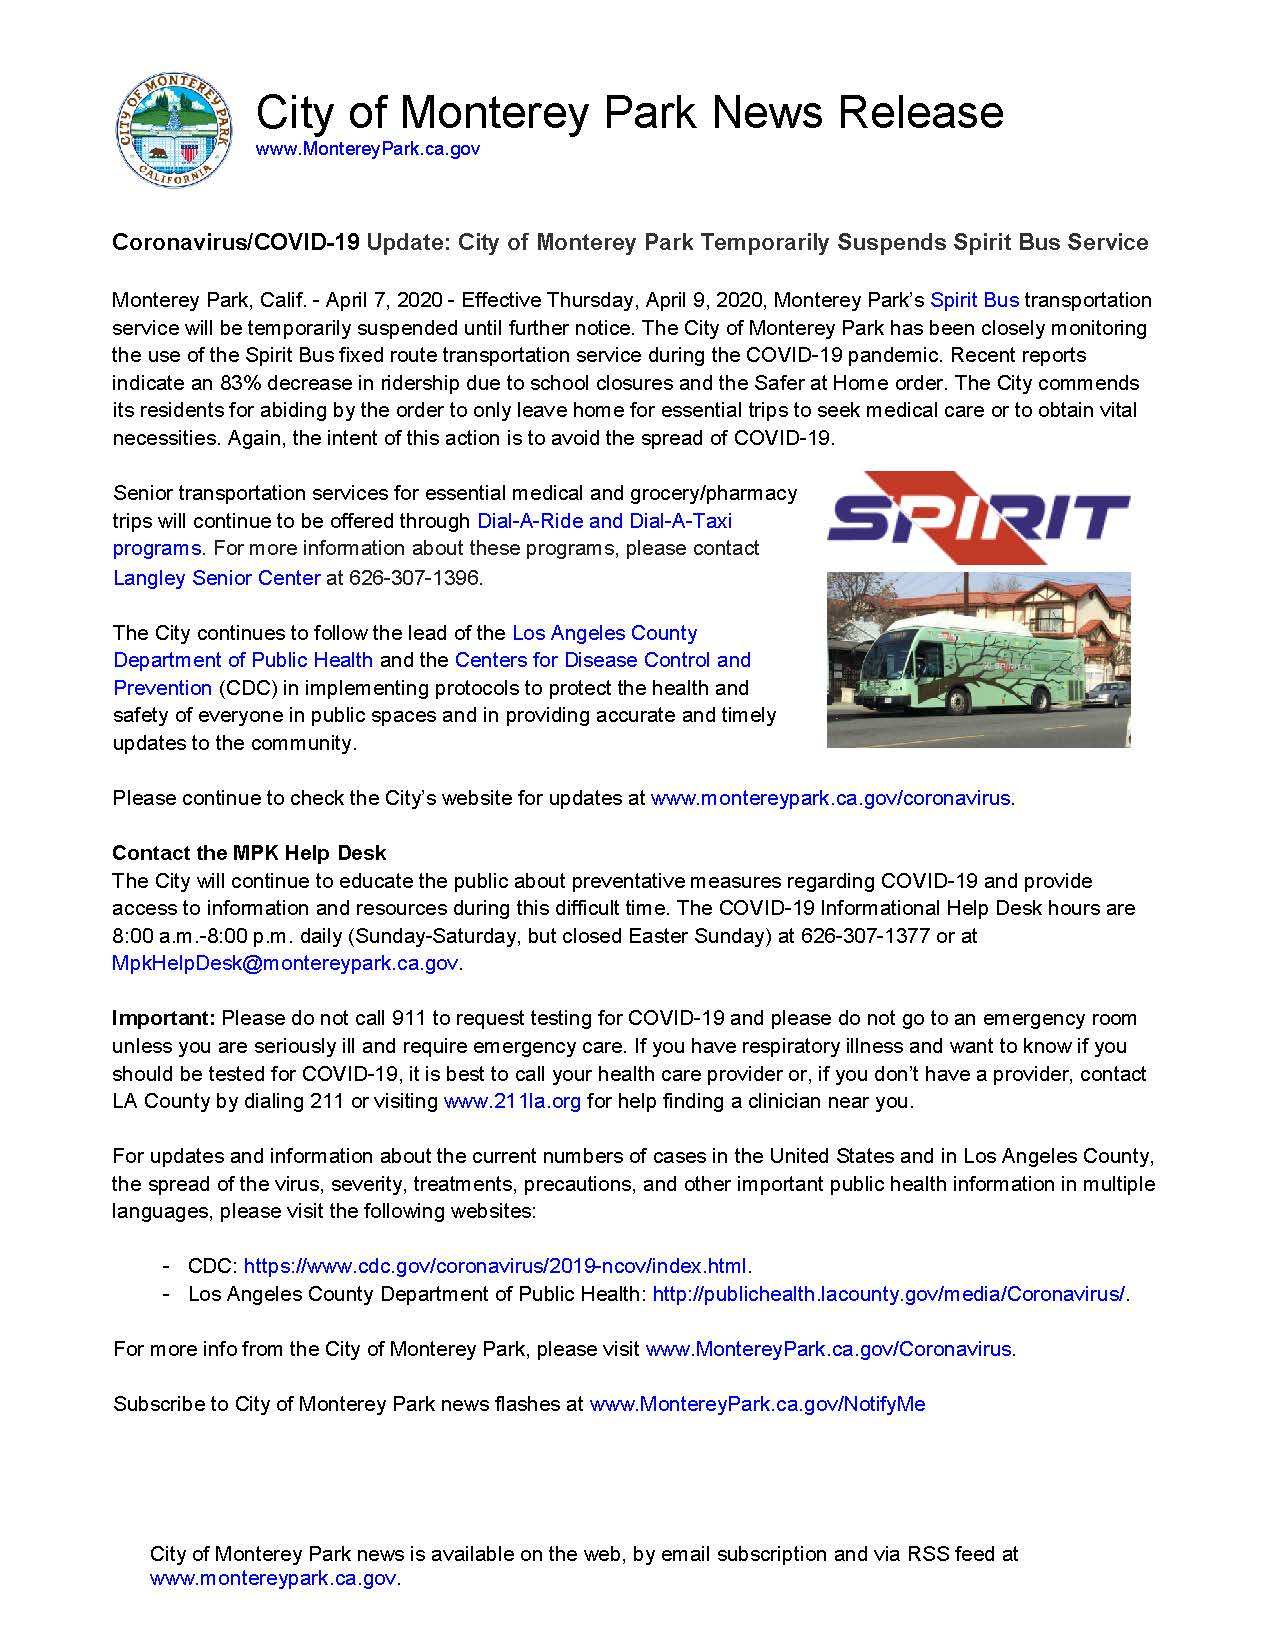 MPK News Release-Coronavirus COVID-19 Update Monterey Park Temporarily Suspends Spirit Bus 4-7-20